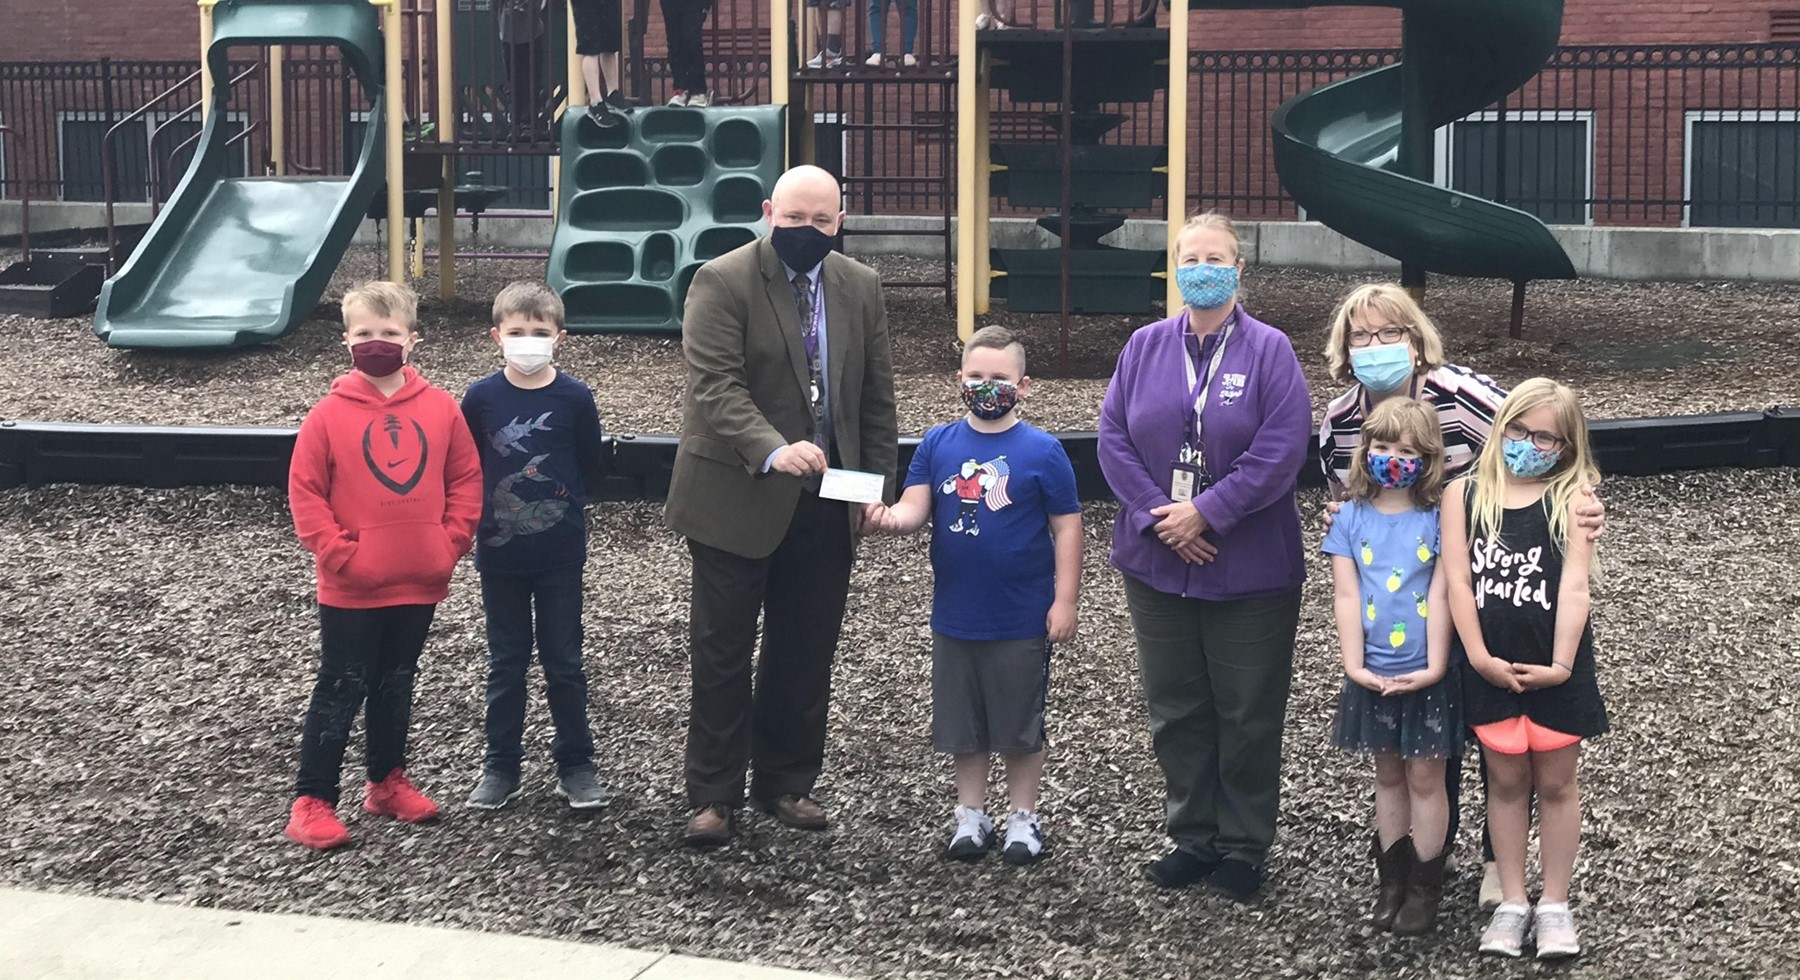 Mrs. Lapehn's 1st Grade students @ BEE presenting Mr. Ondrus a check from BEE PTA to Esther Ryan shoe fund. The students raised $258.00 in their box top drive. Mrs. Lapehn's class turned in the highest number of box tops.